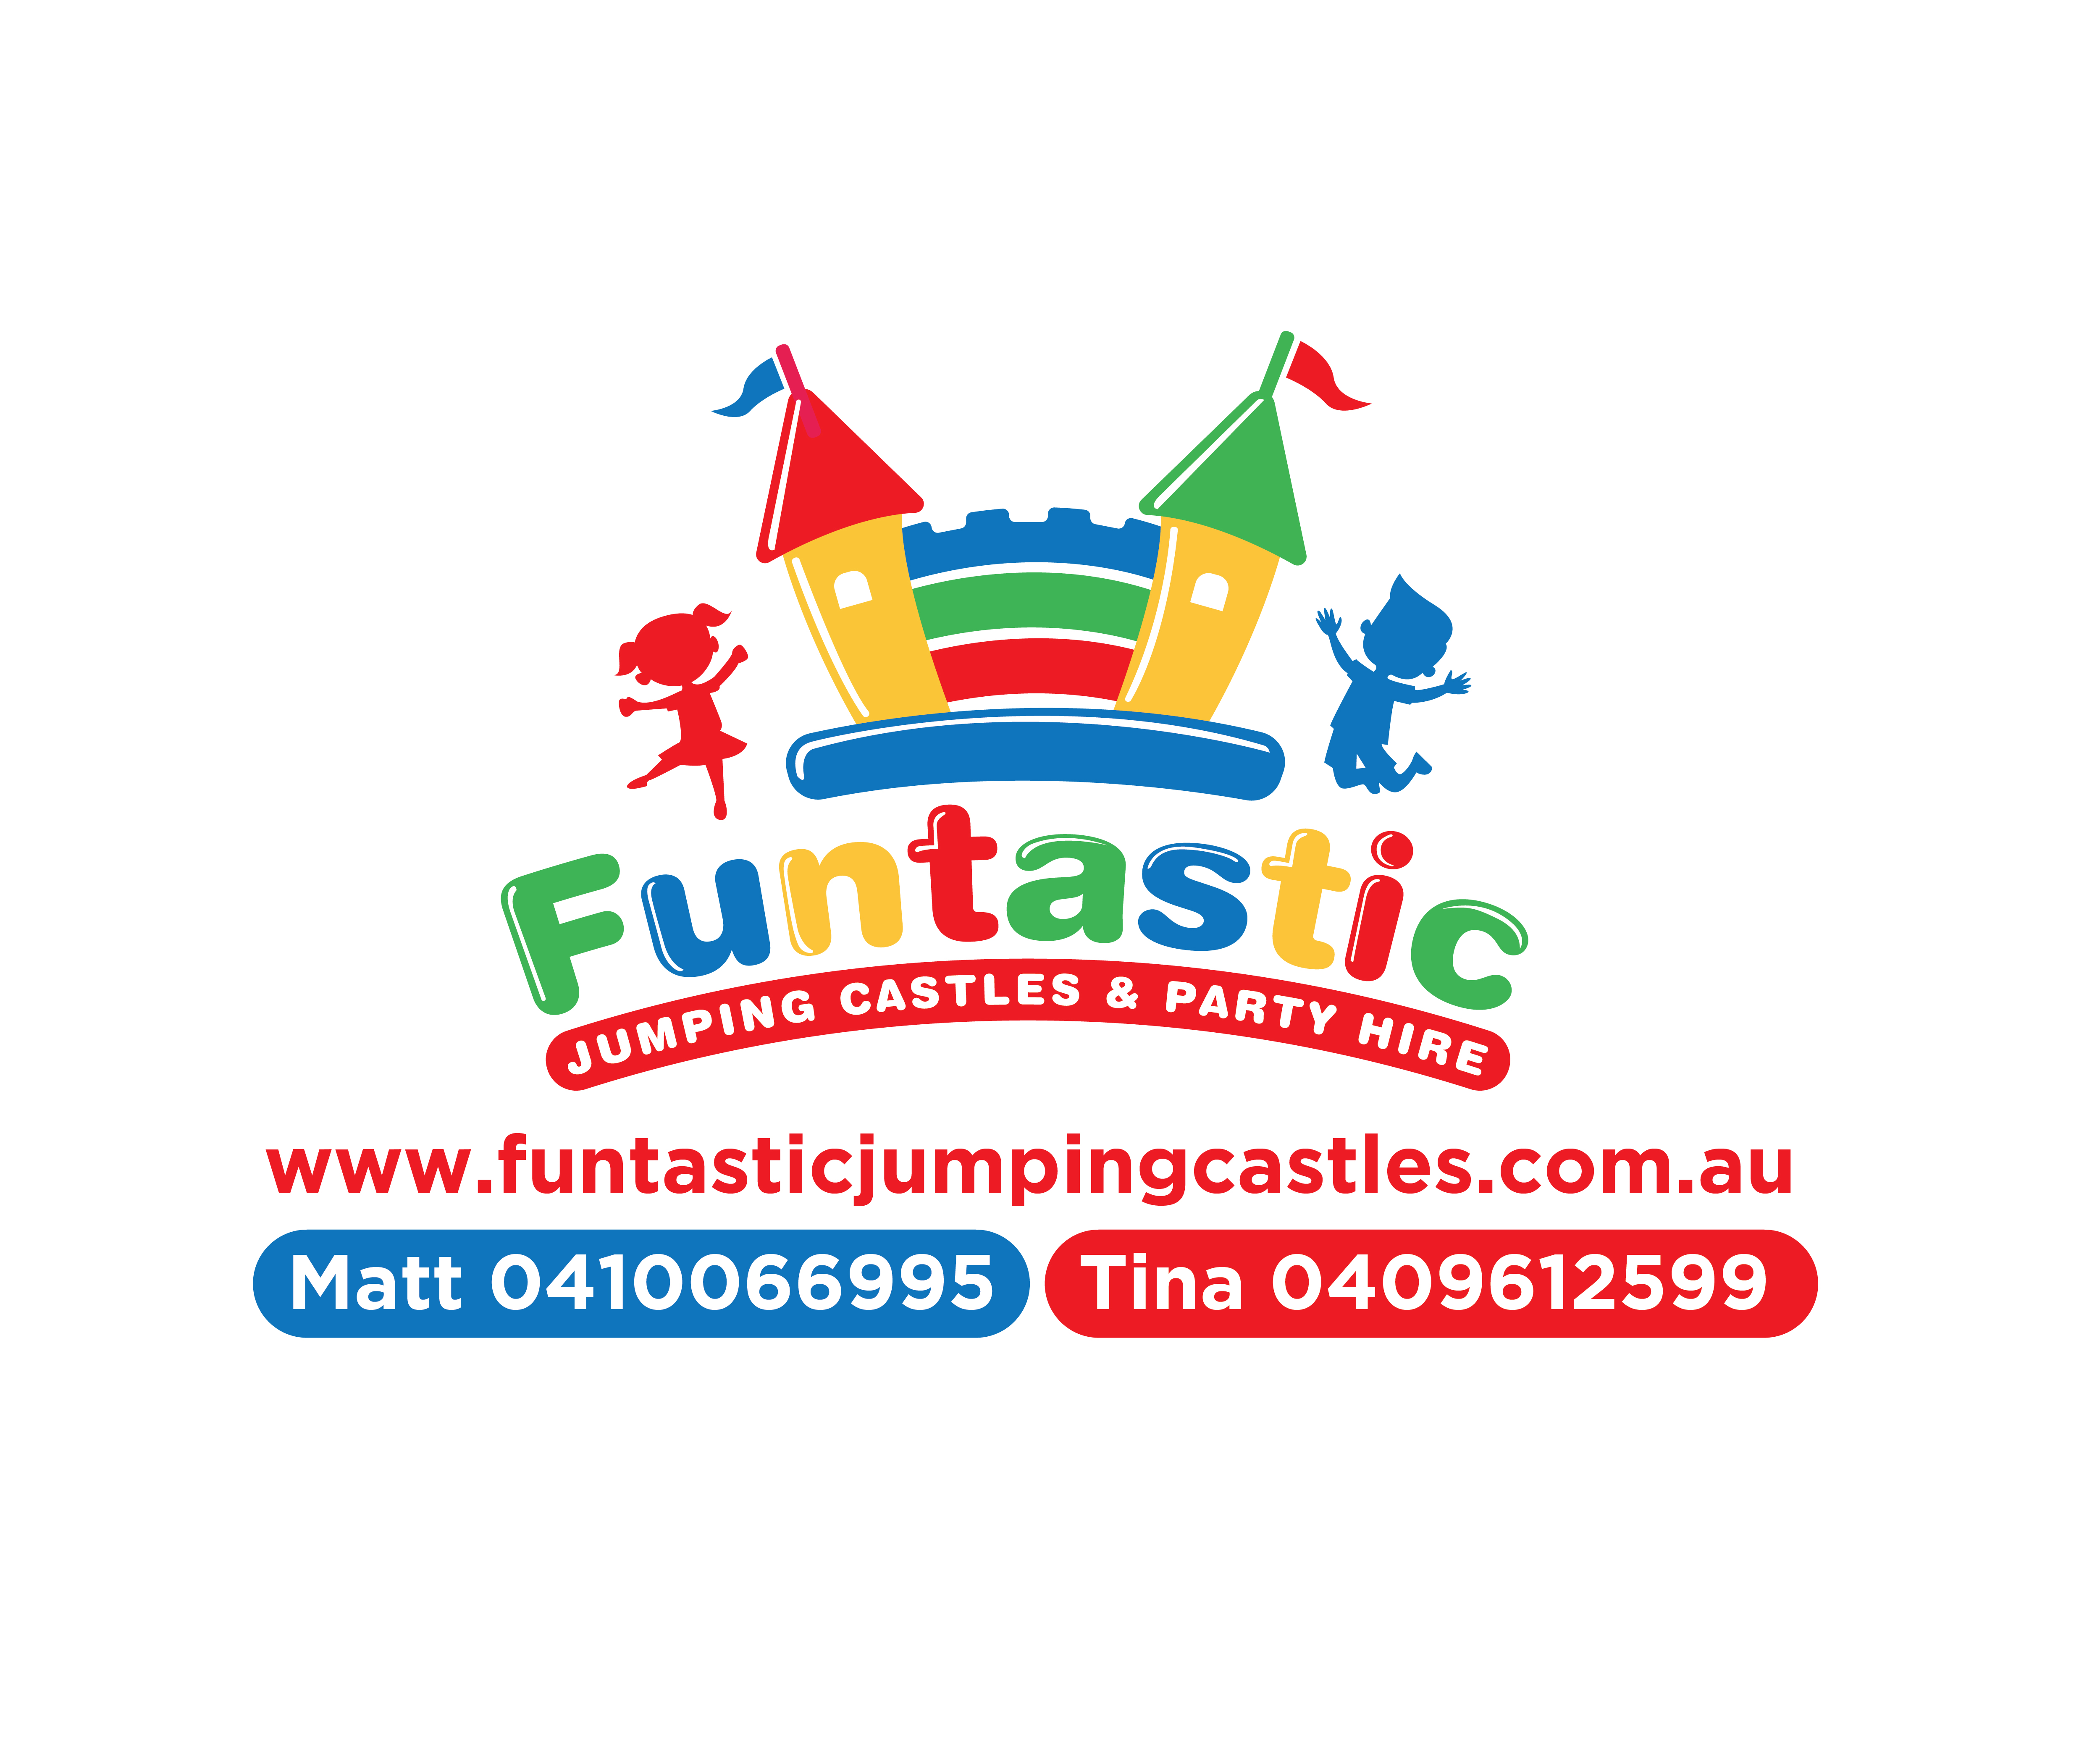 Funtastic Jumping Castles & Party Hire